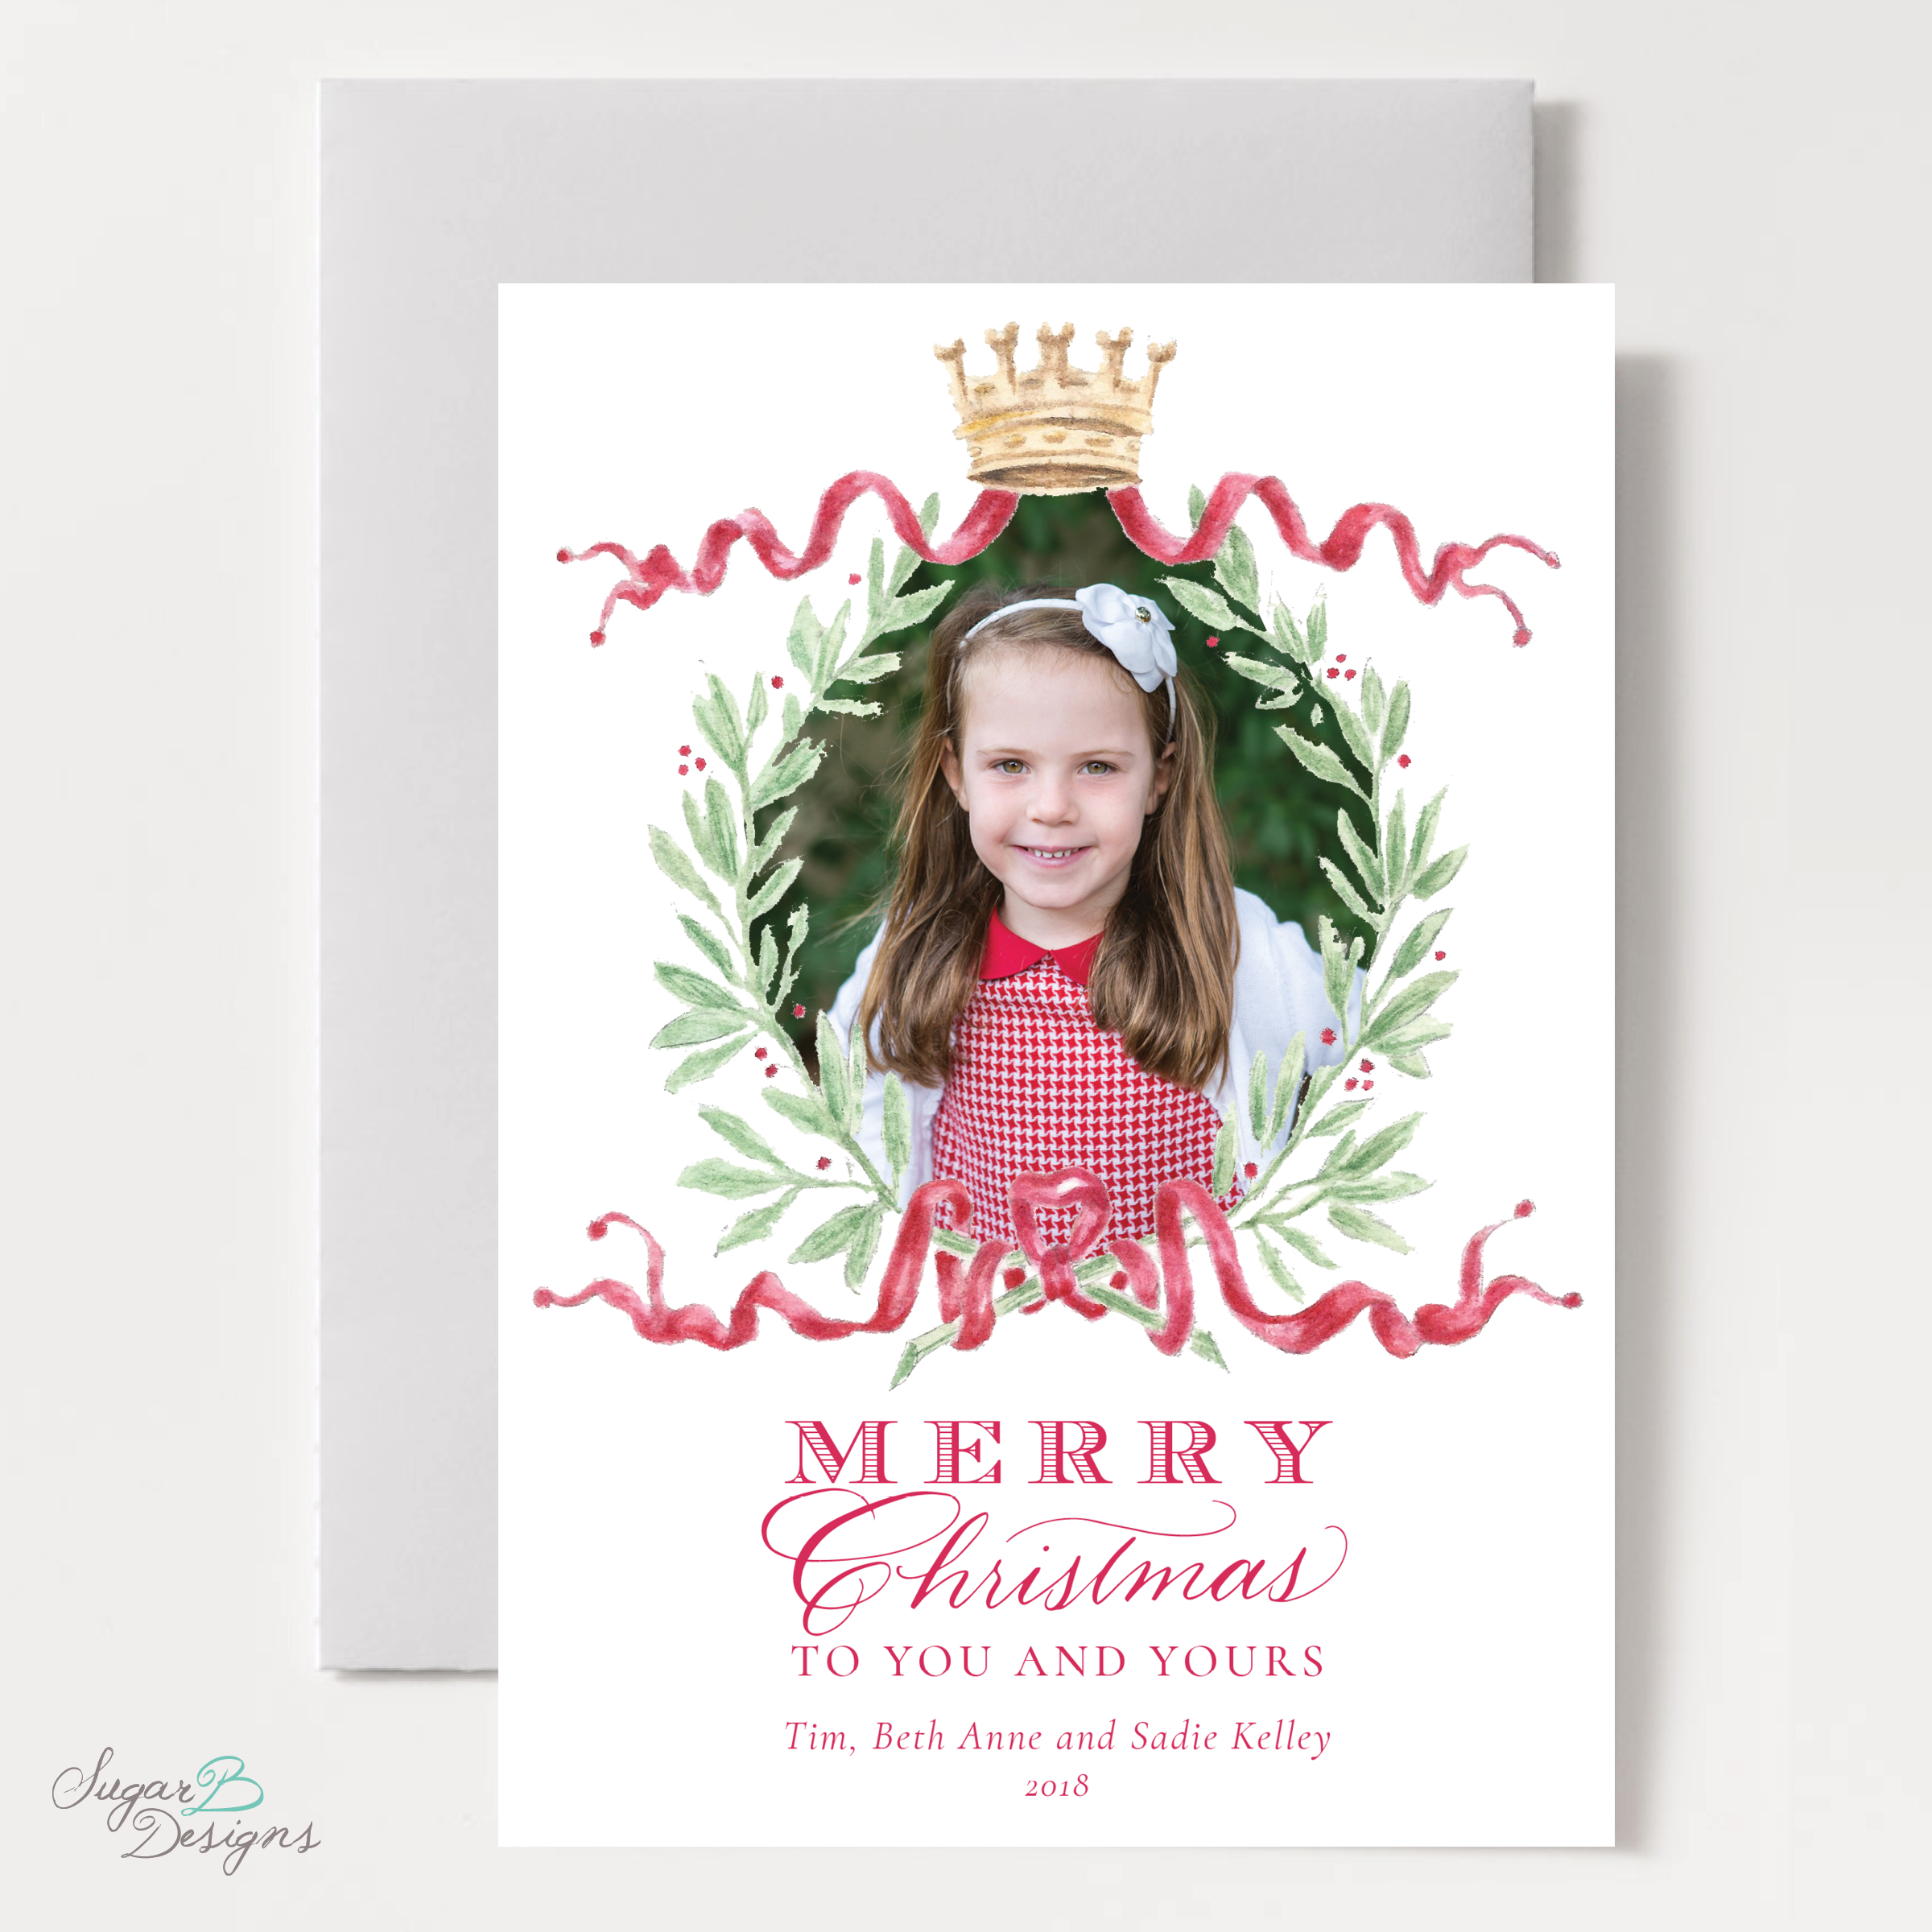 Royal Wreath Red Change of Address Christmas Card front by Sugar B Designs.png